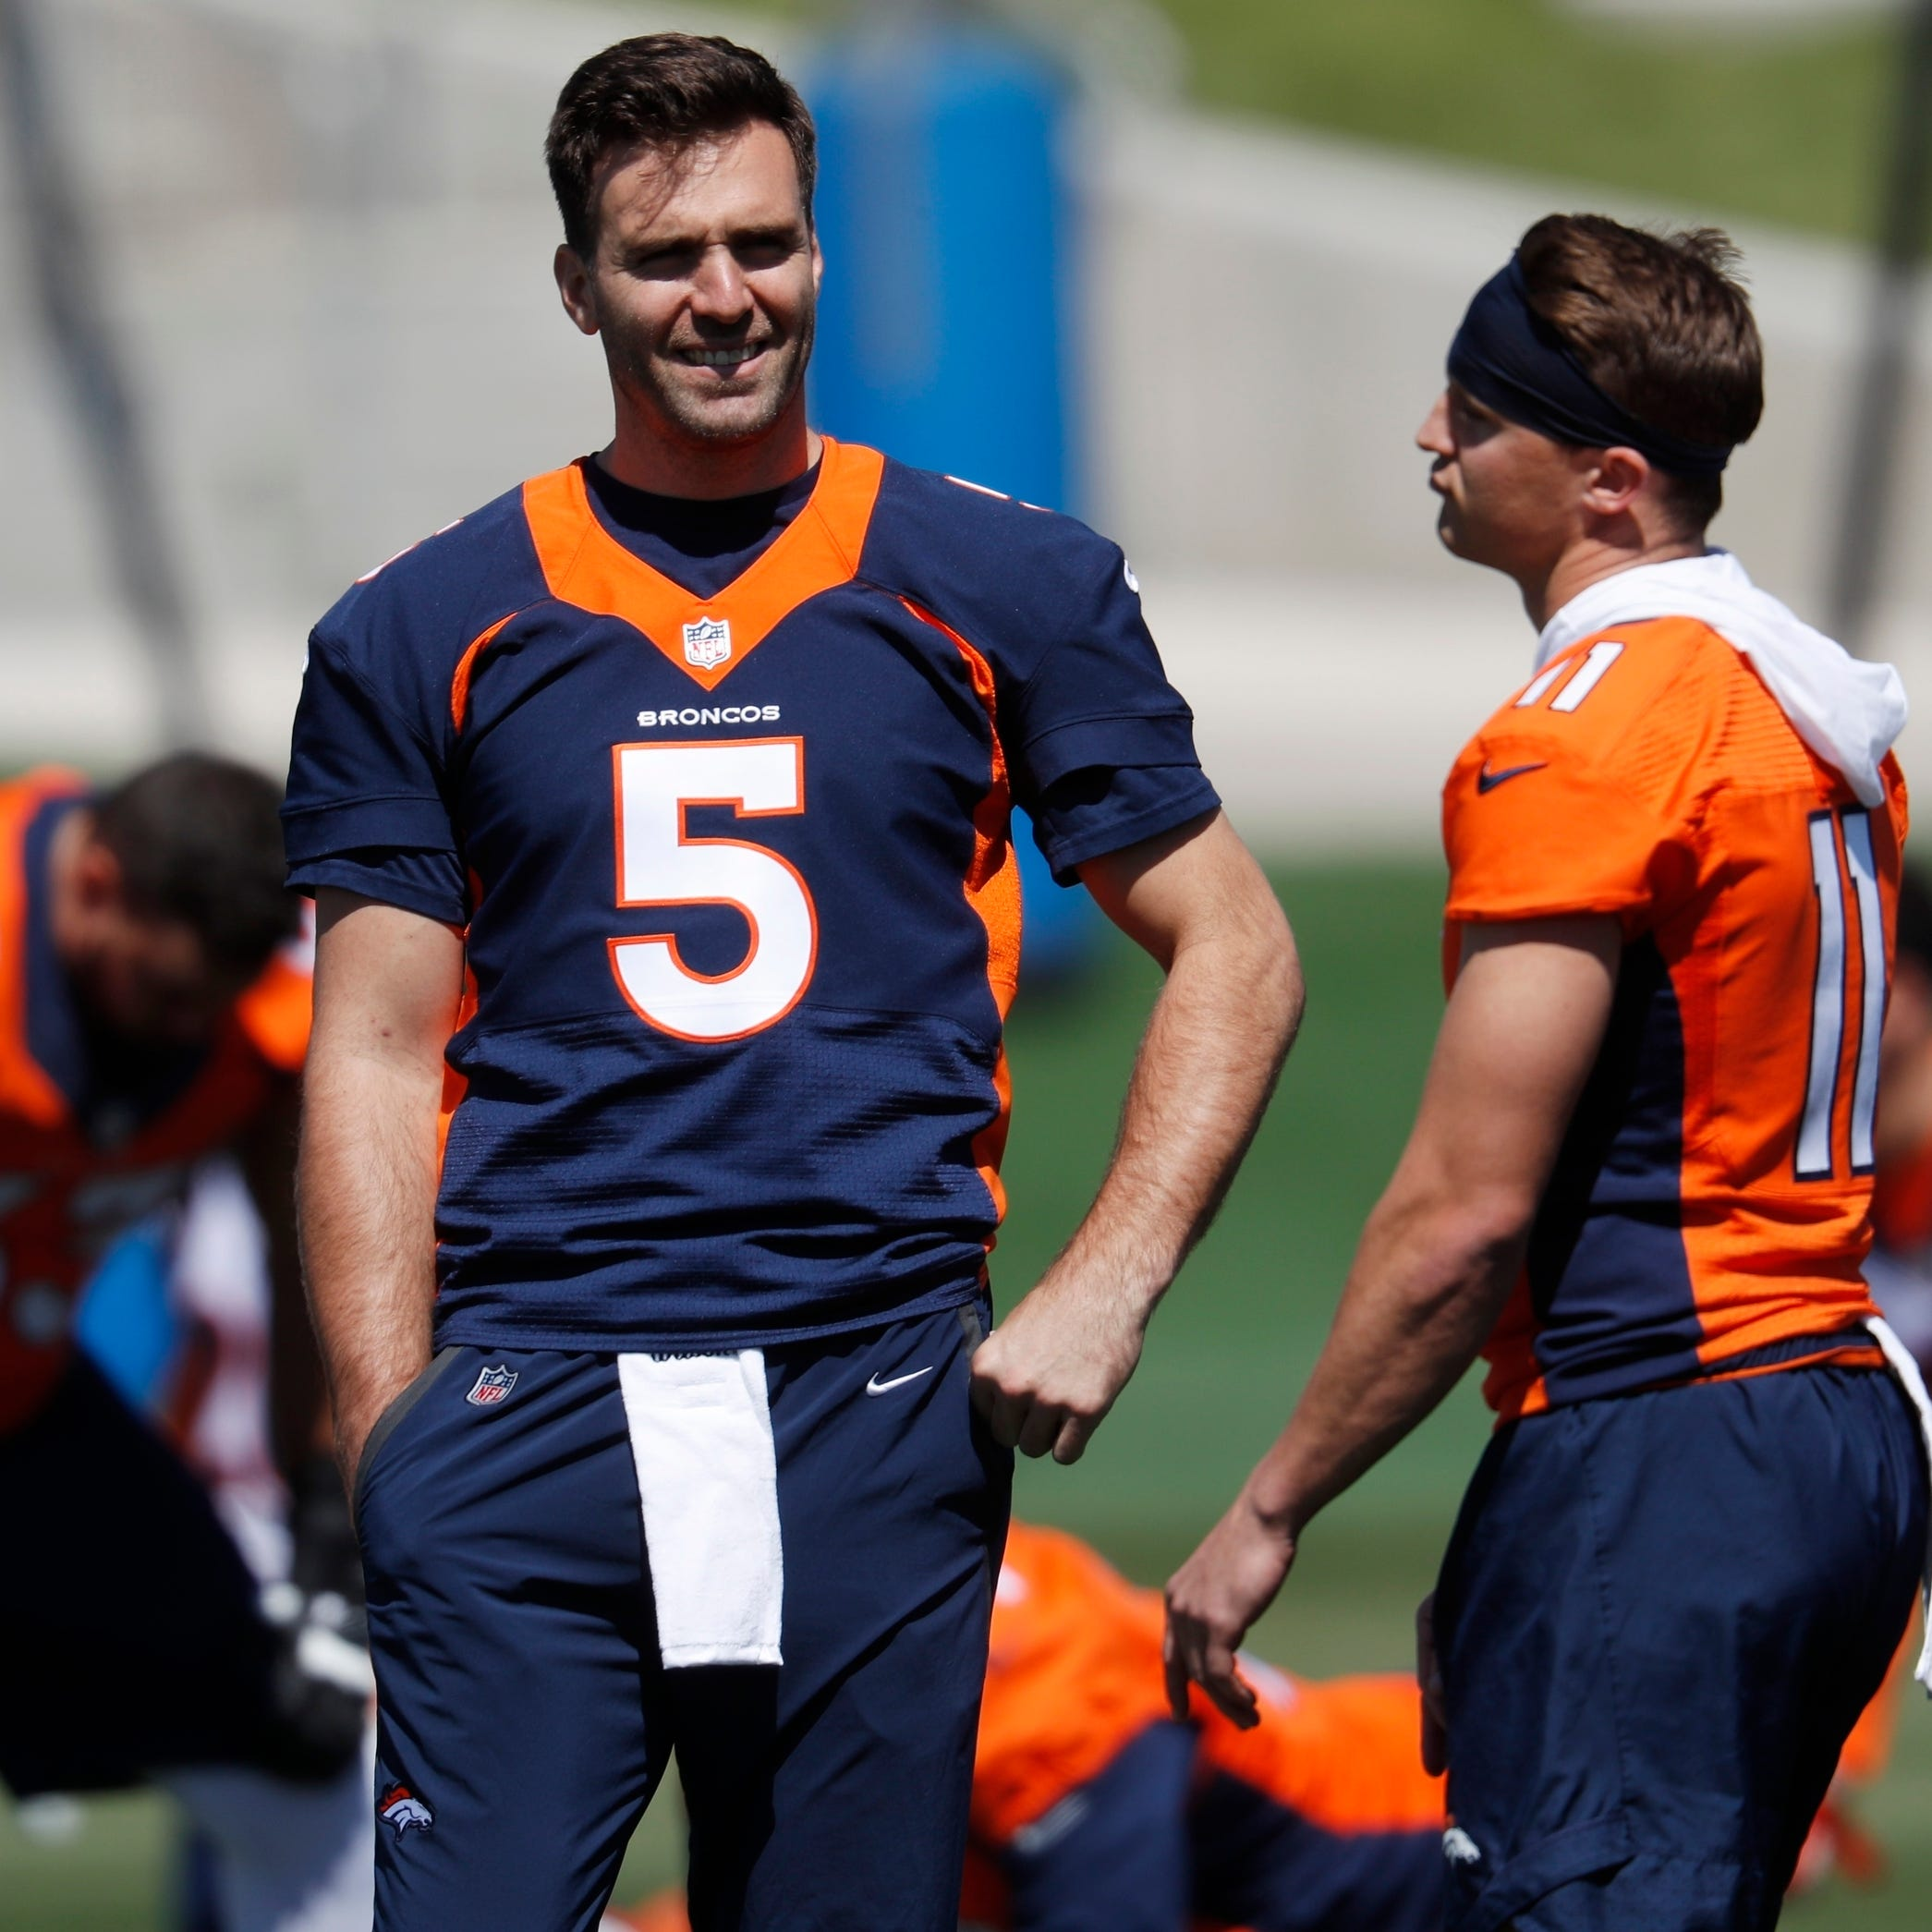 Joe Flacco says it's not his job to mentor rookie Broncos QB